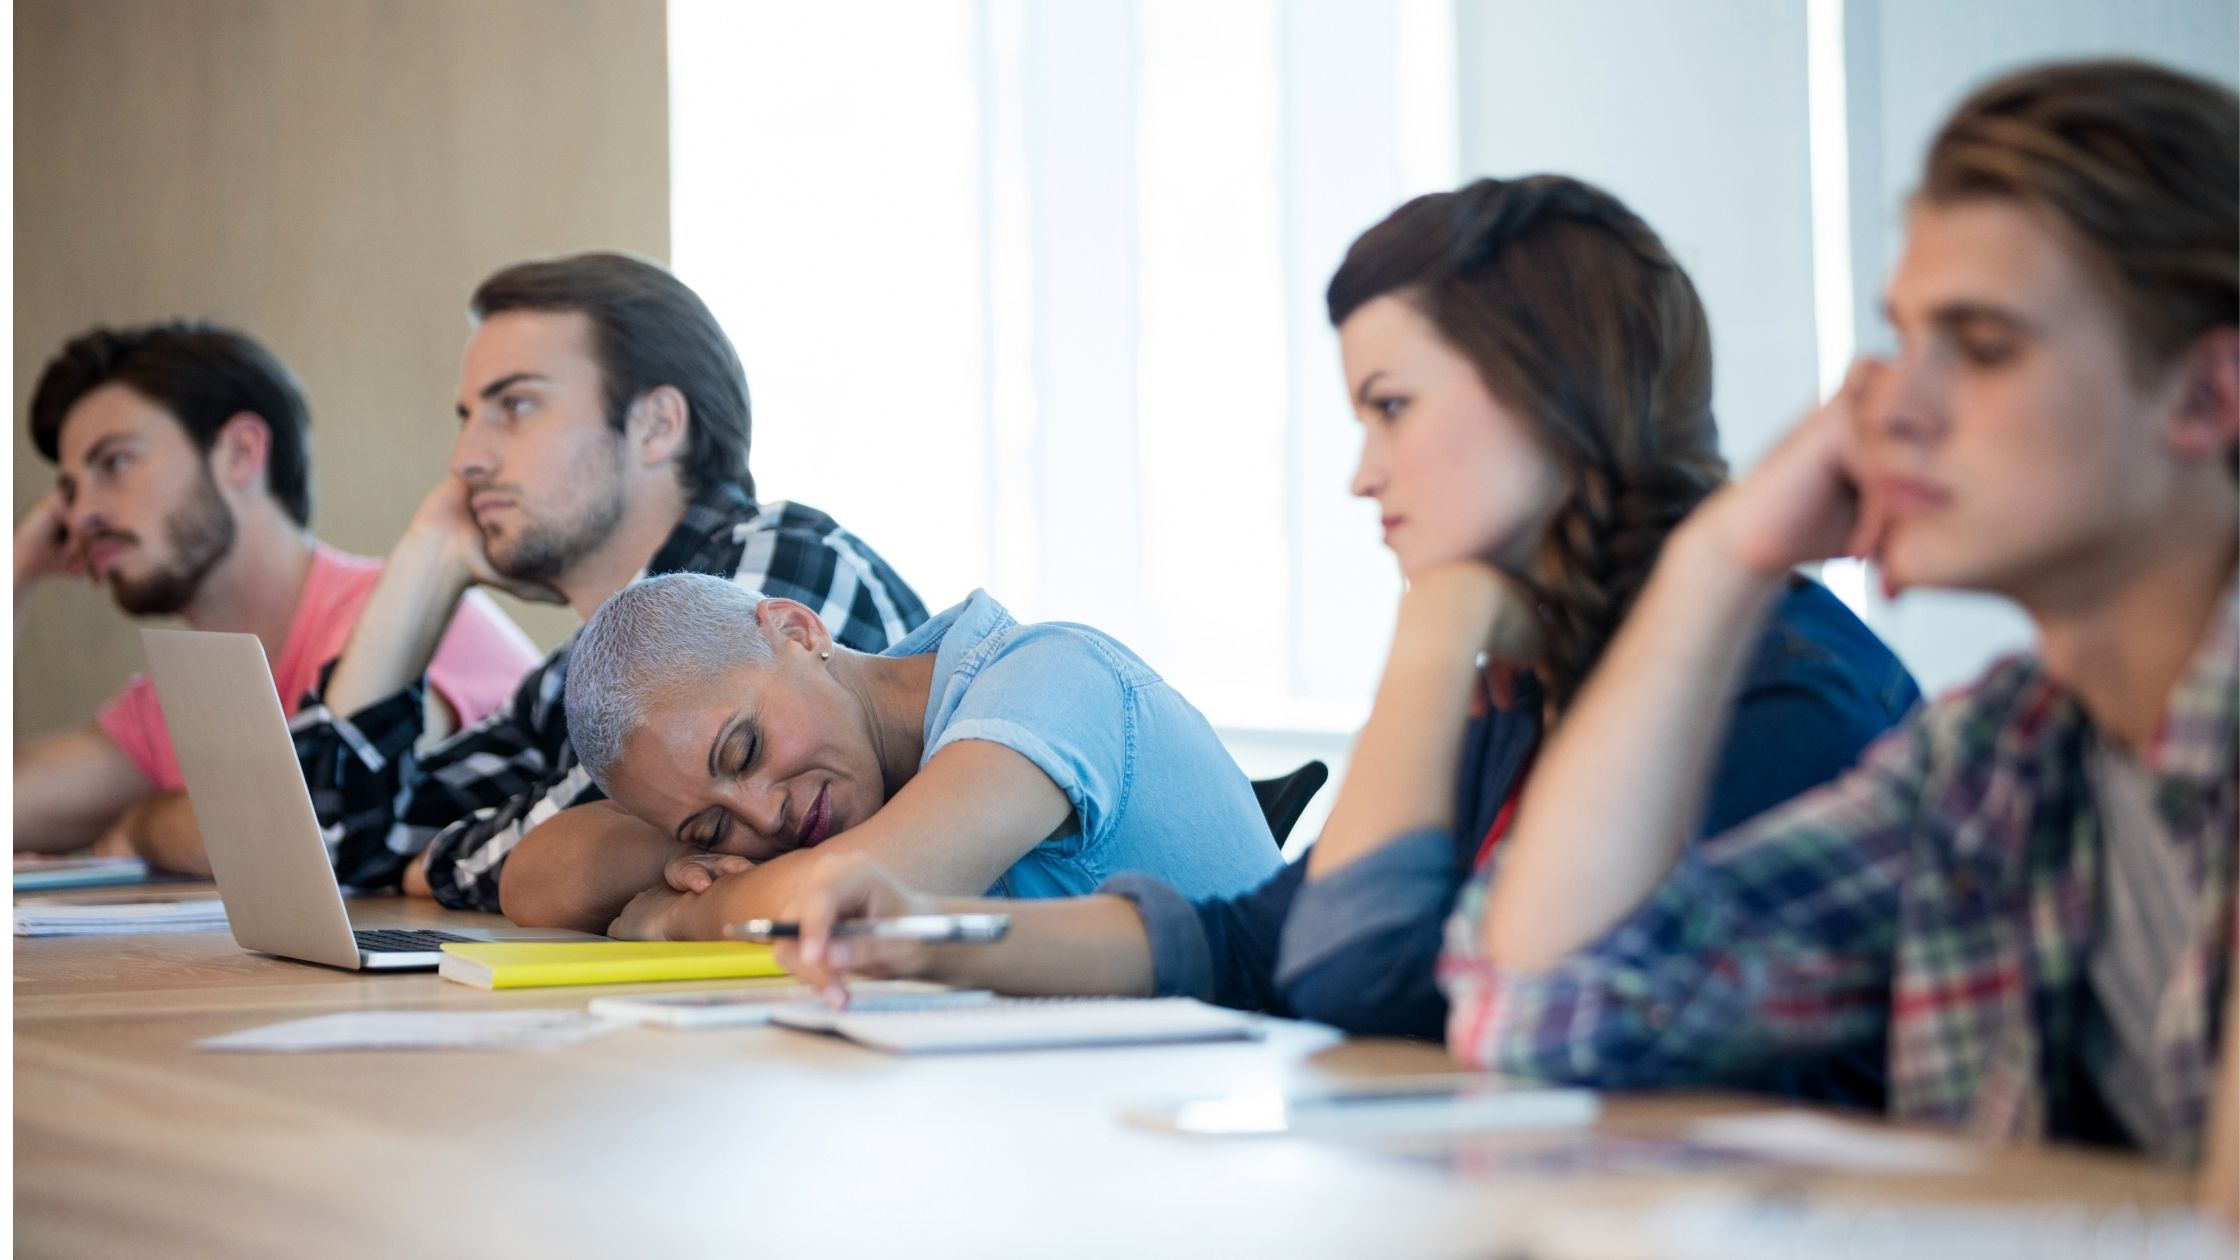 bored attendees at a meeting falling asleep